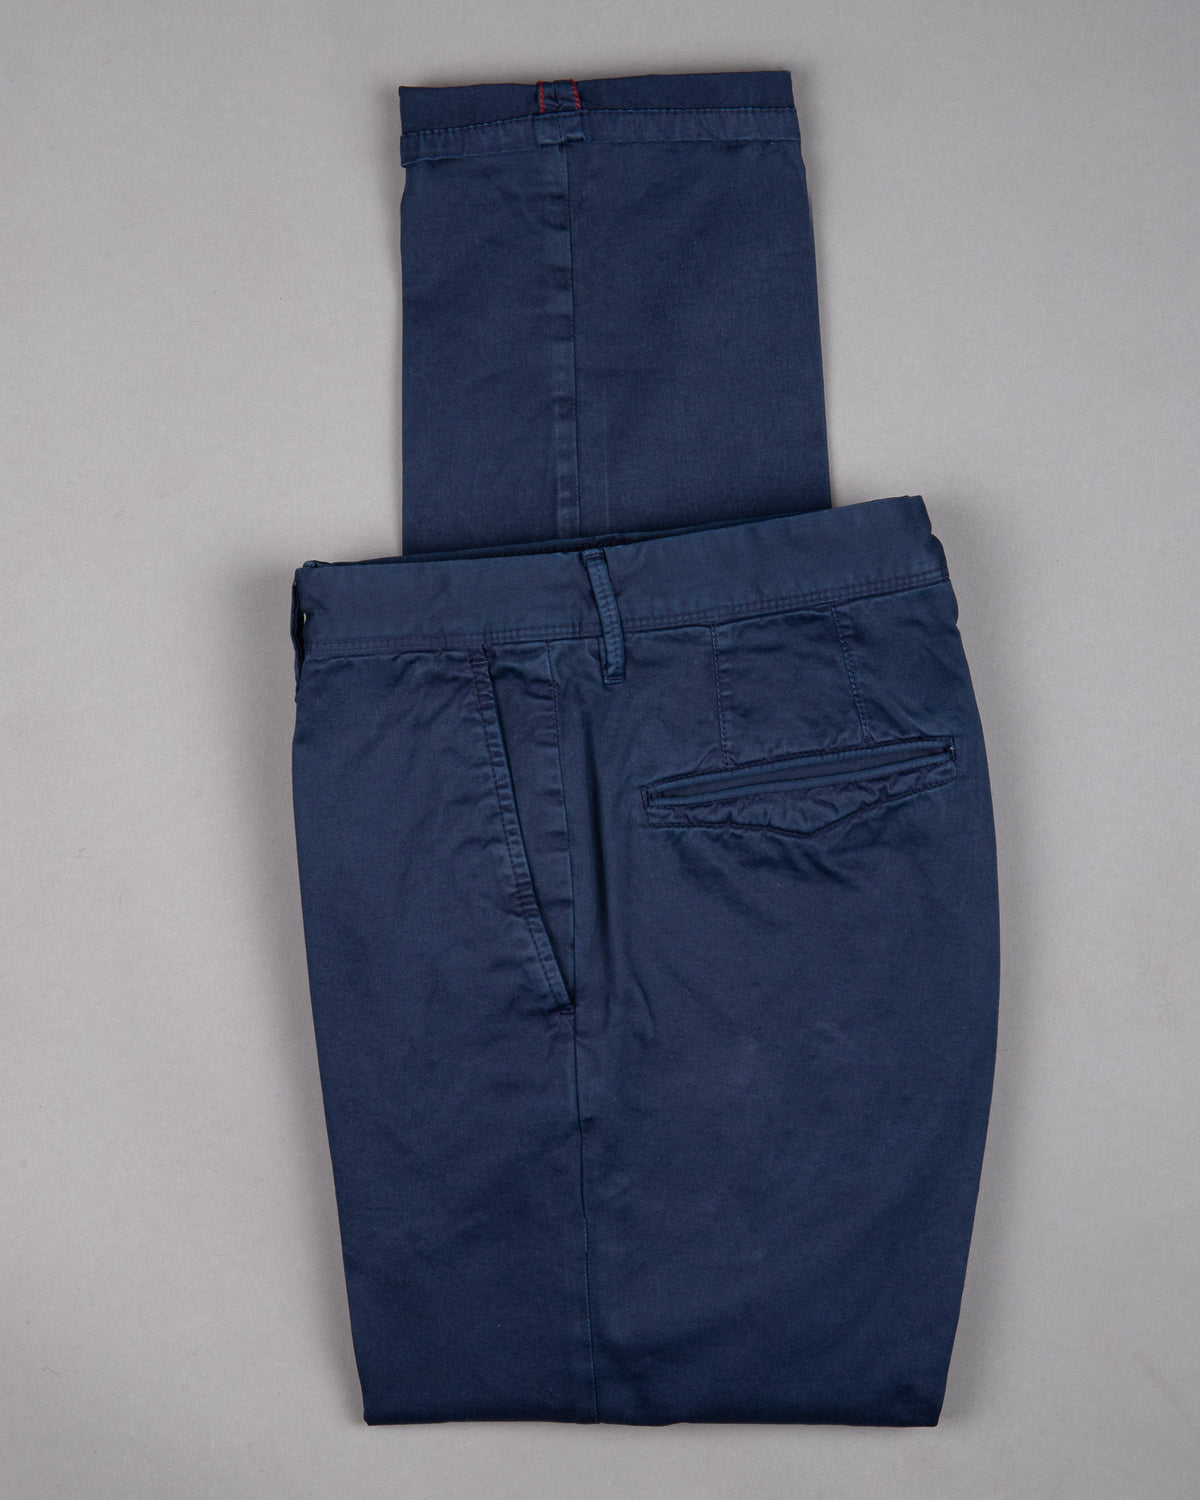 Incotex slacks Chinos Trouser Pants Hose for men in dark blue navy 97% cotton 3% elastane